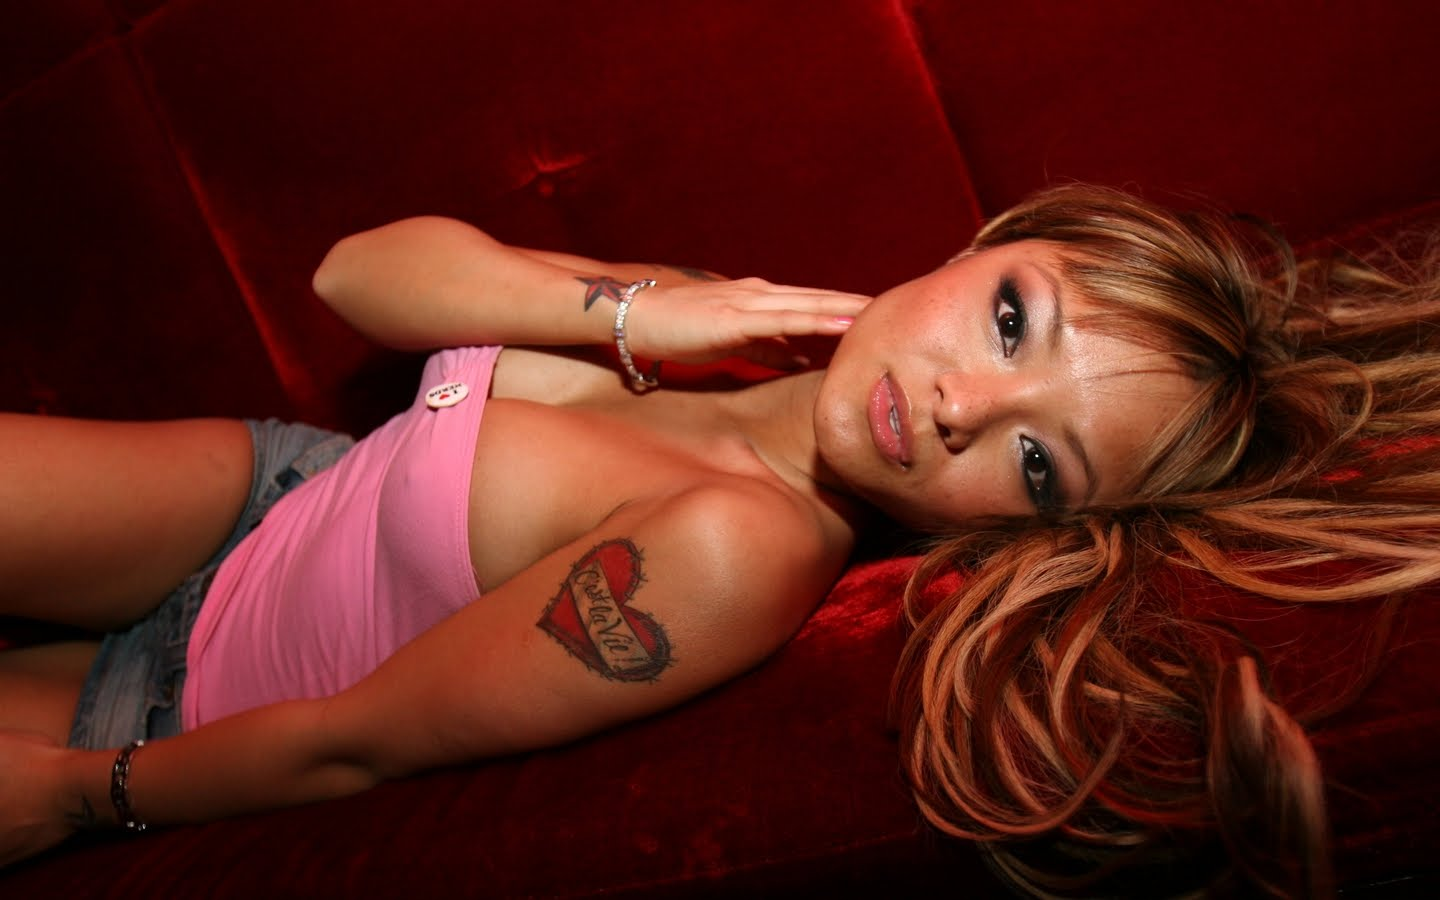 Top Of Magazine Tila Tequila Wallpaper Top Of Magazine